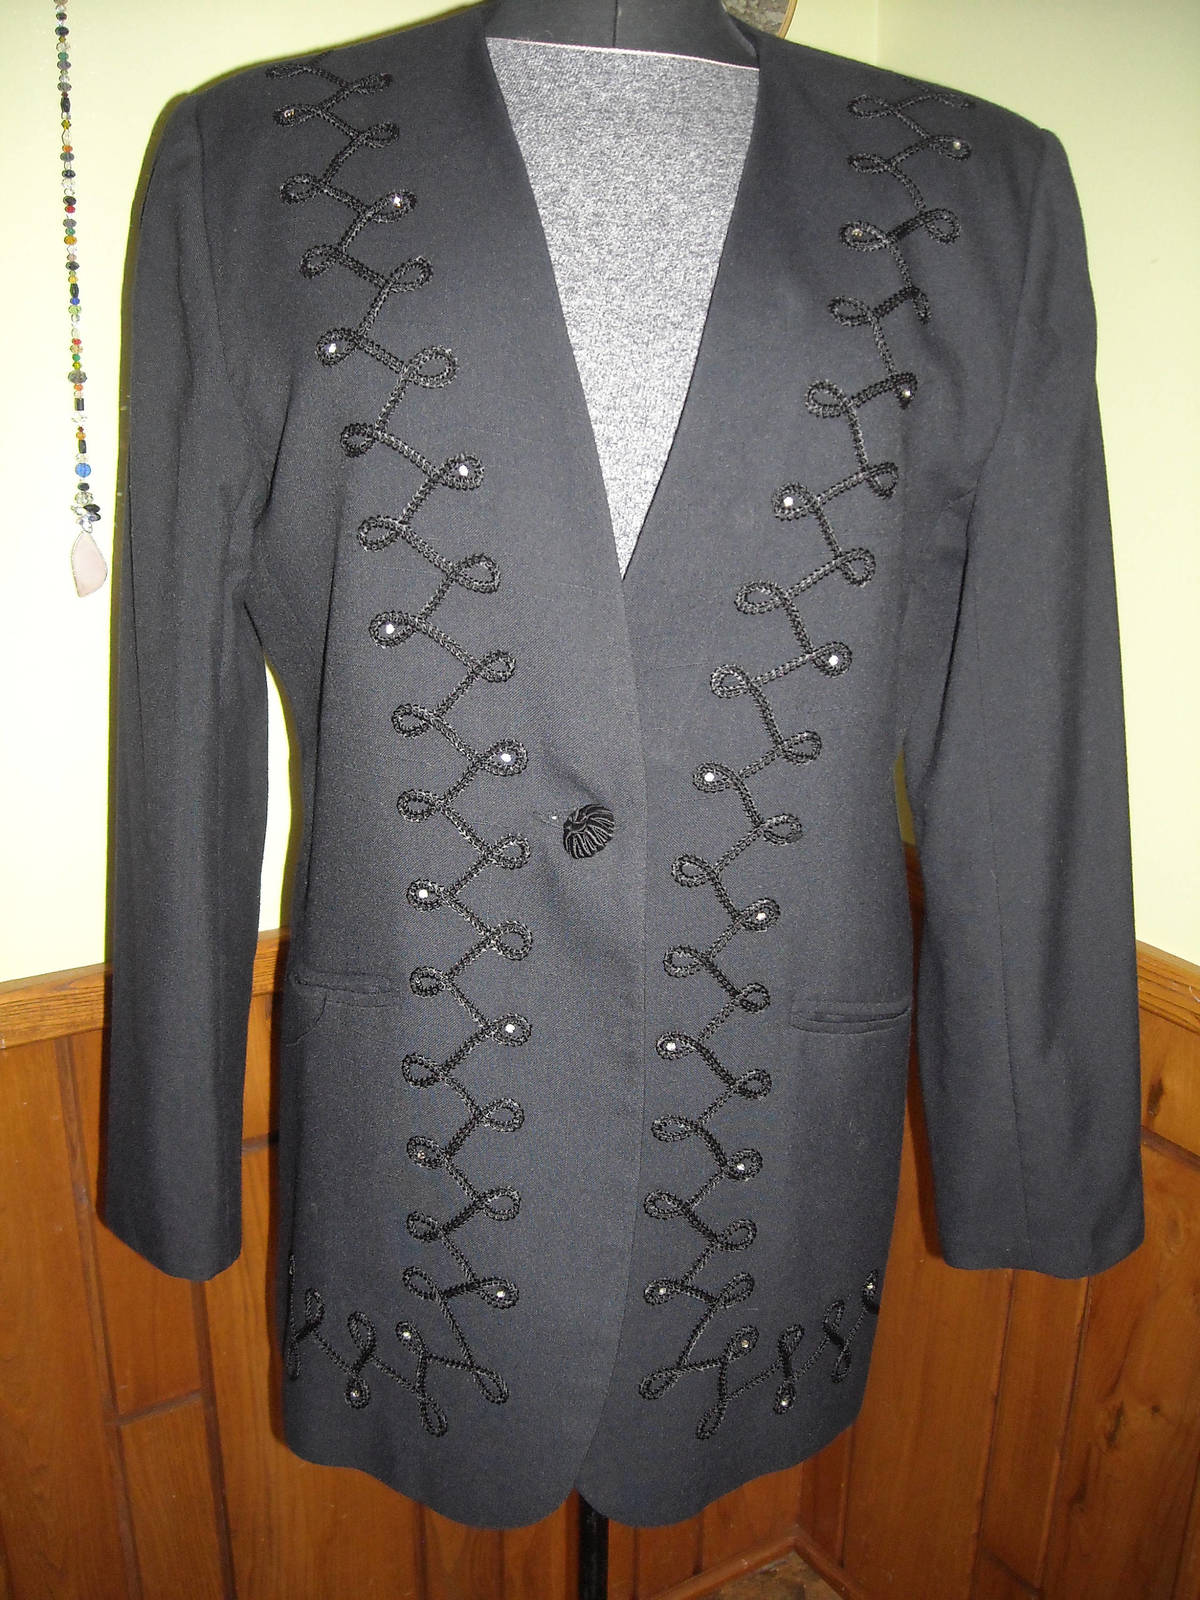 Women's Executive Collection Black Dress Jacket With Embroidery & Rhinestones 14